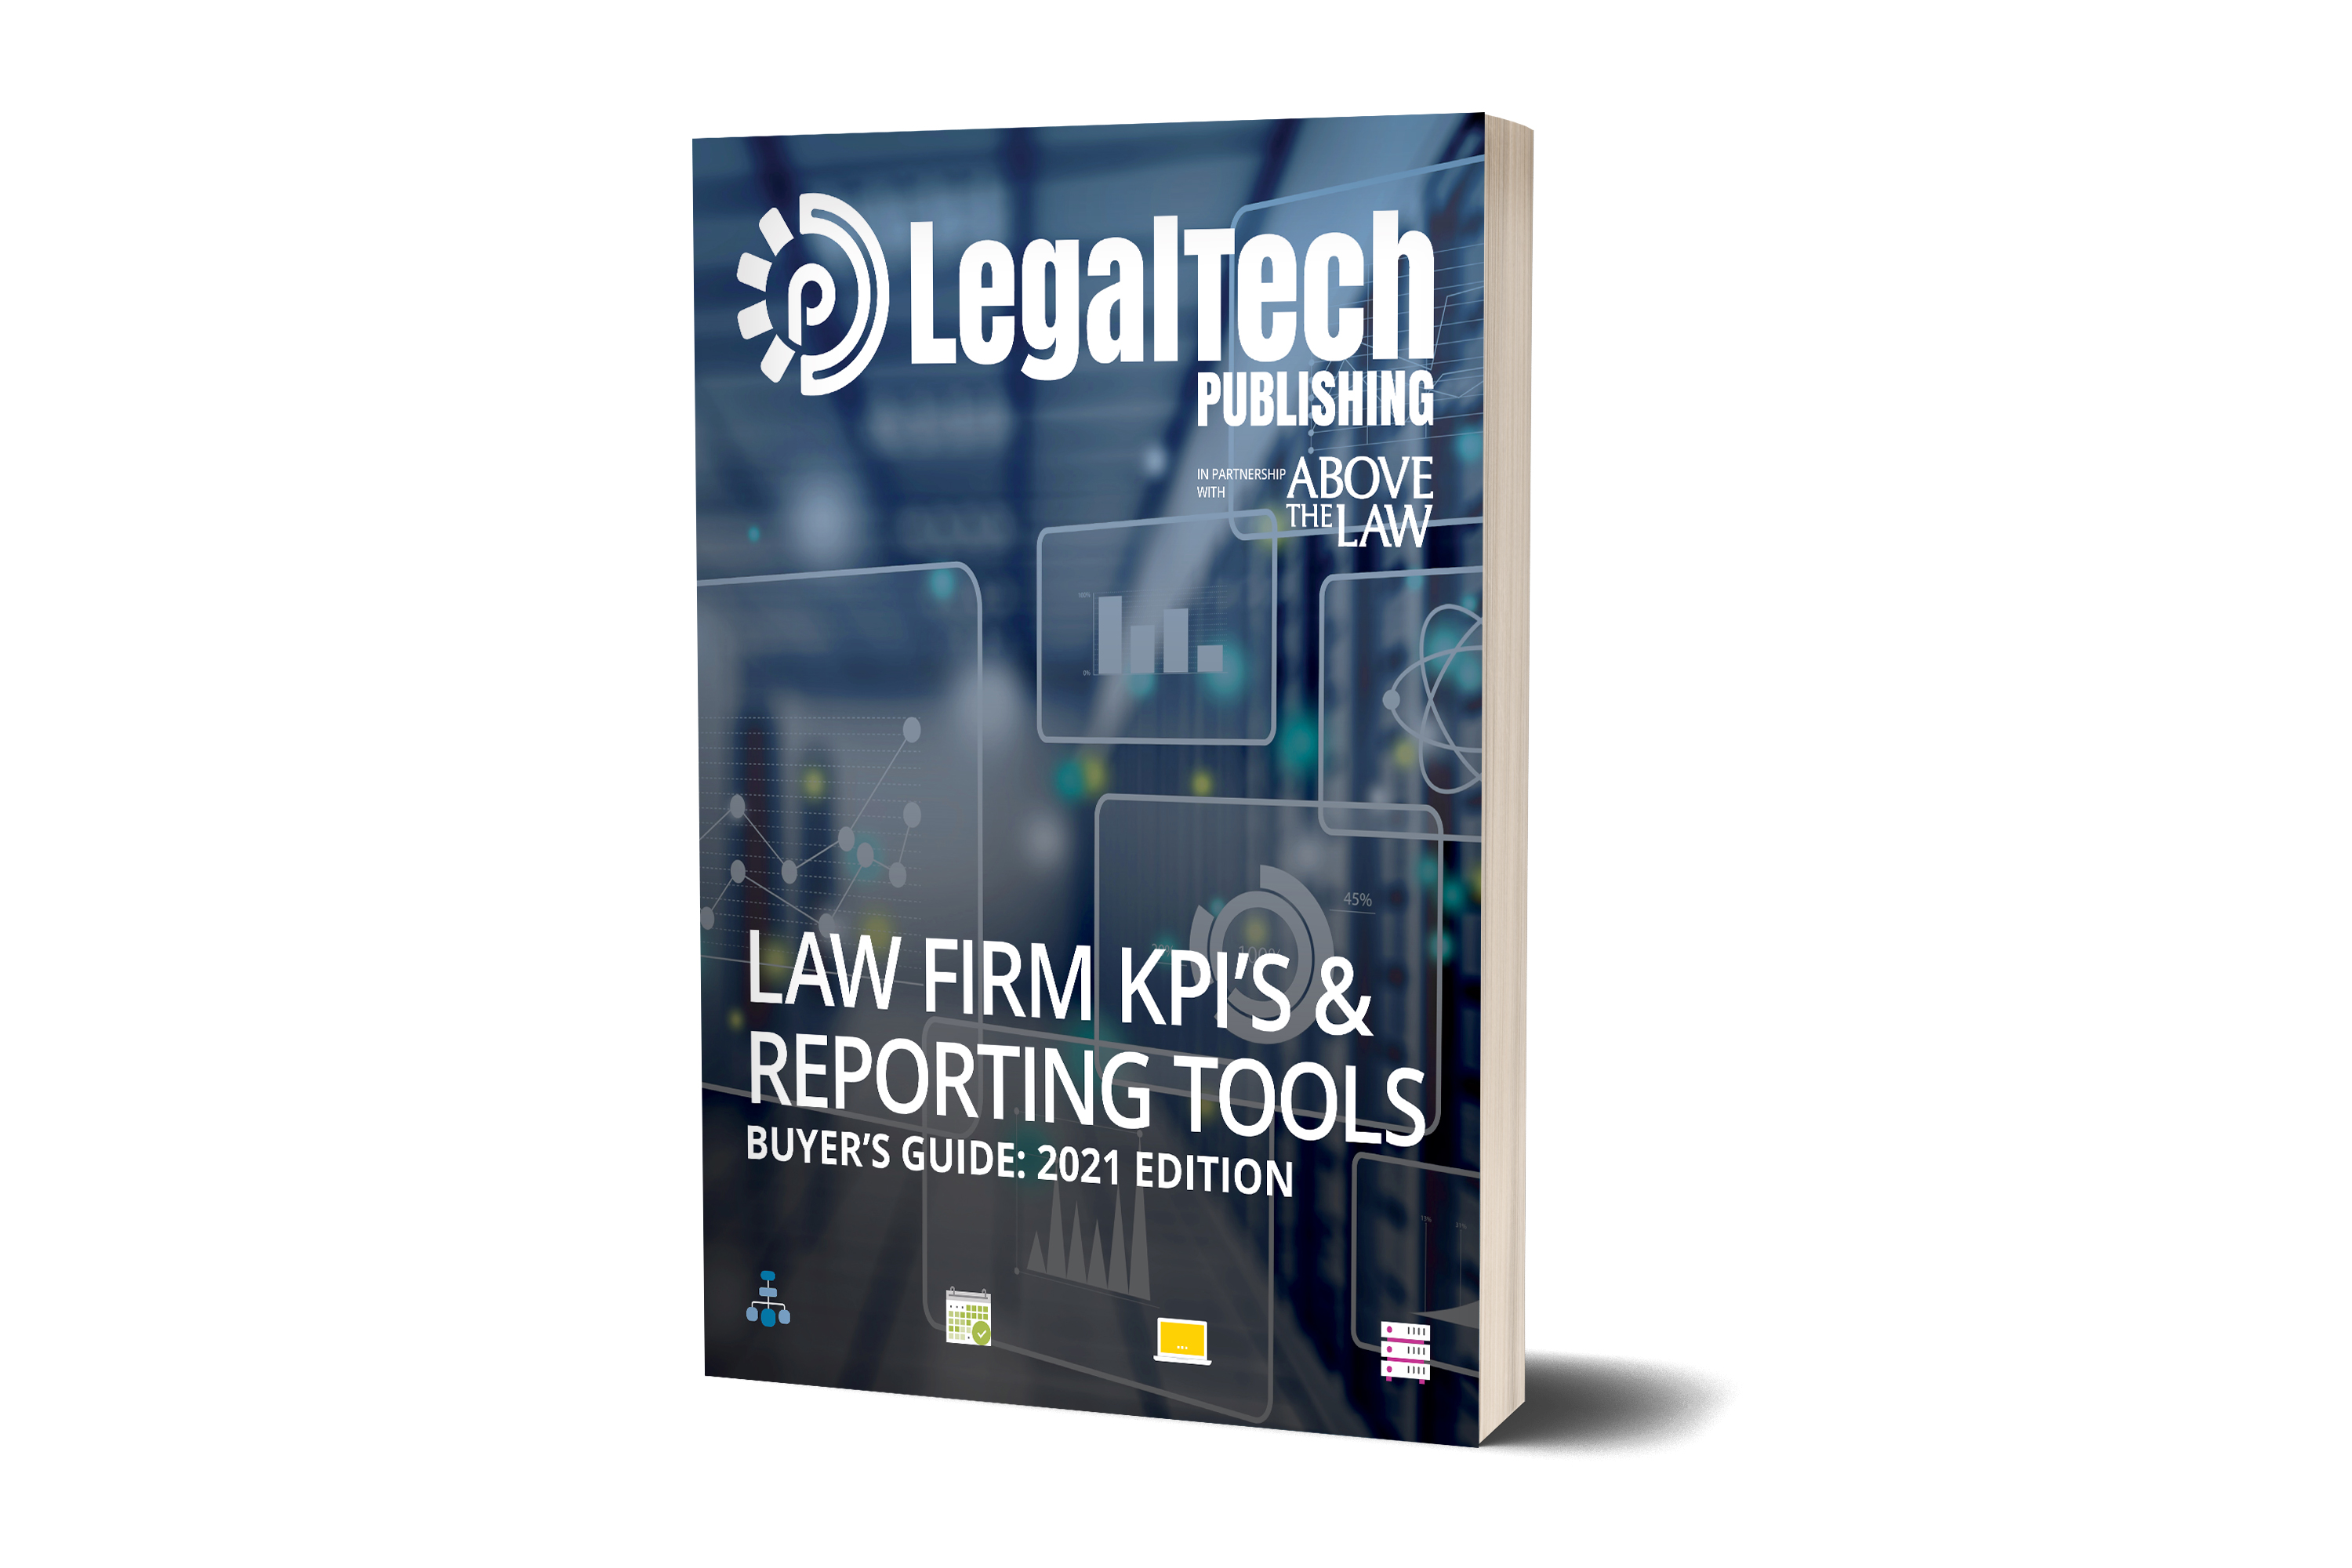 Law-Firm-KPIs-and-Reporting-Buyers-Guide-2021-Cover-Standing